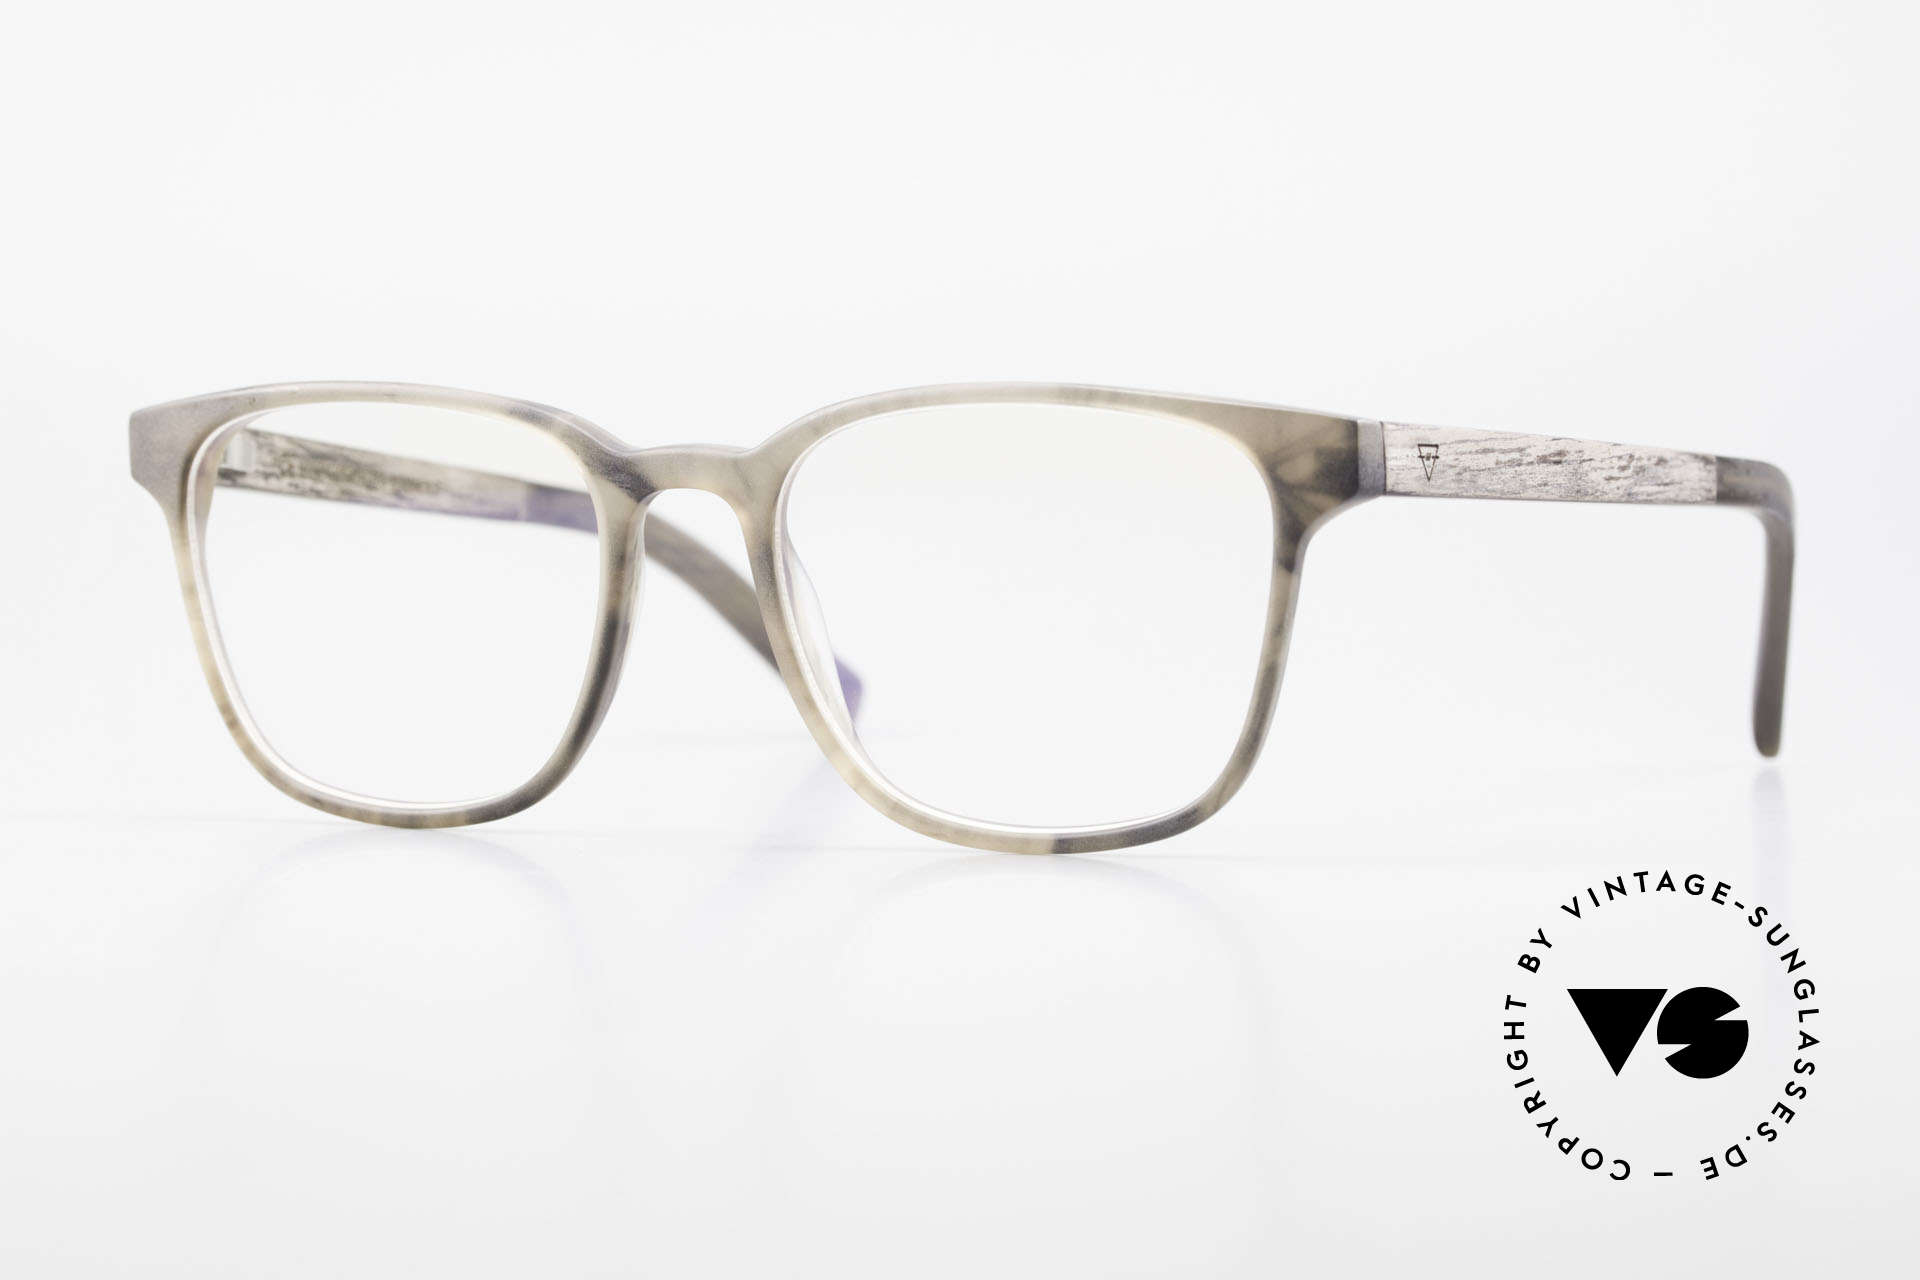 Kerbholz Ludwig Men's Wood Glasses Blackwood, classic men's glasses by Kerbholz, made in Germany, Made for Men